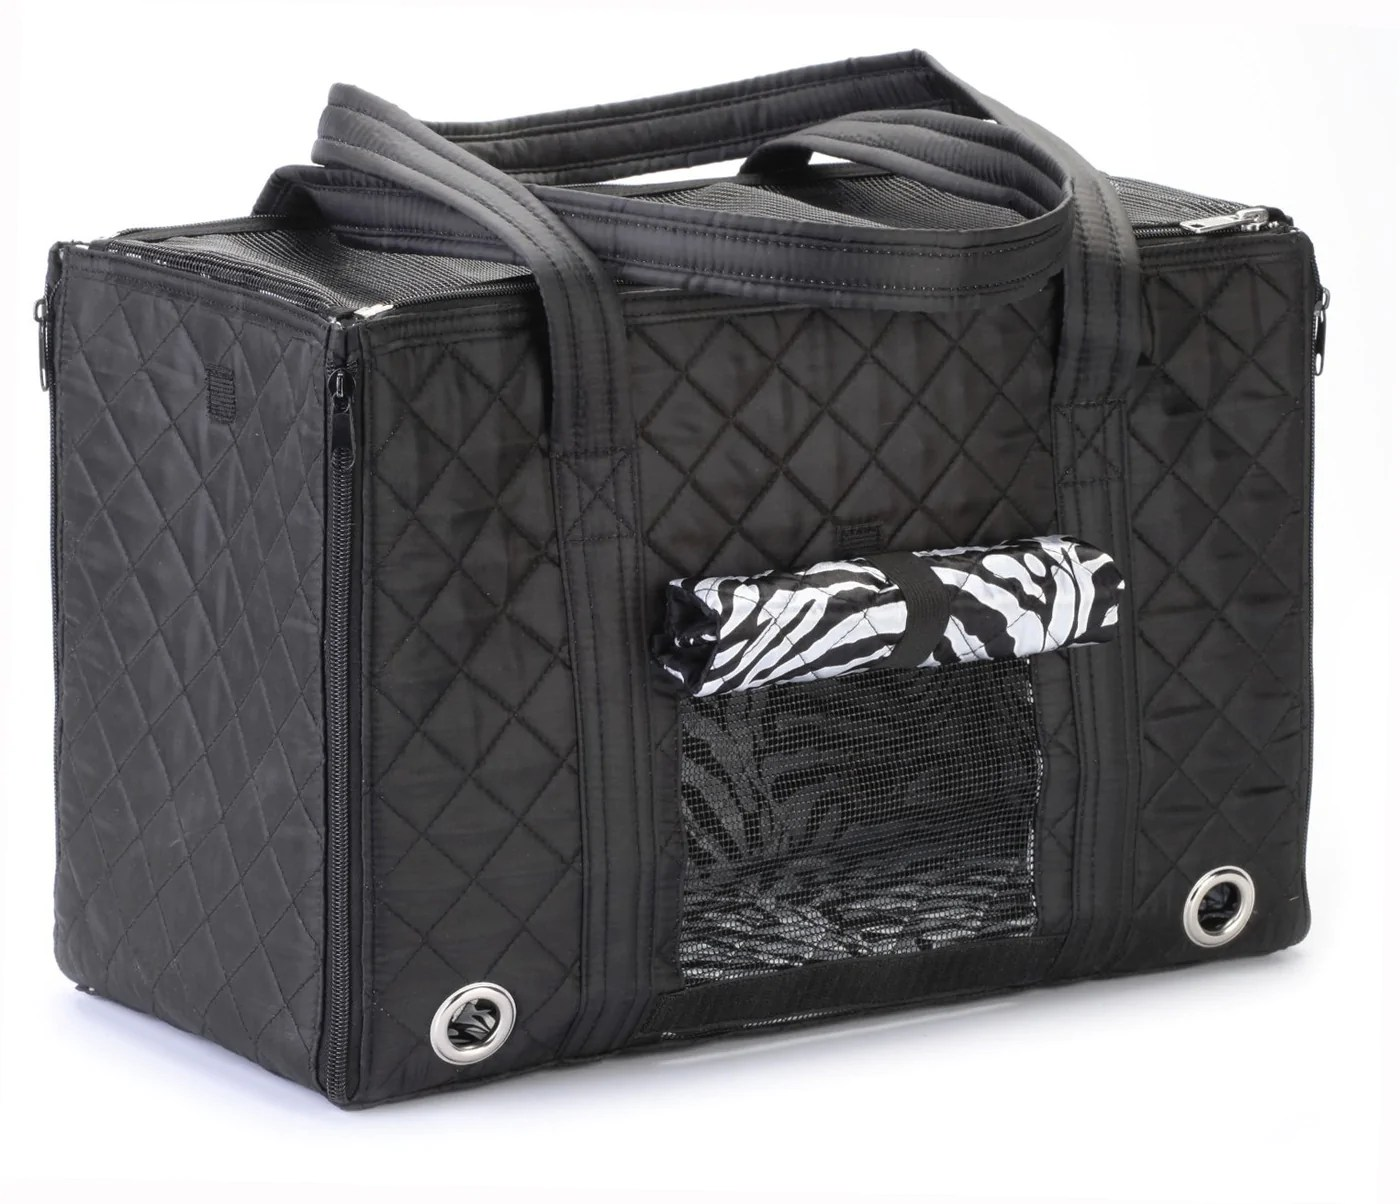 Sherpa Leopard Zebra Lined Park Dog Carrier - Pet Tote